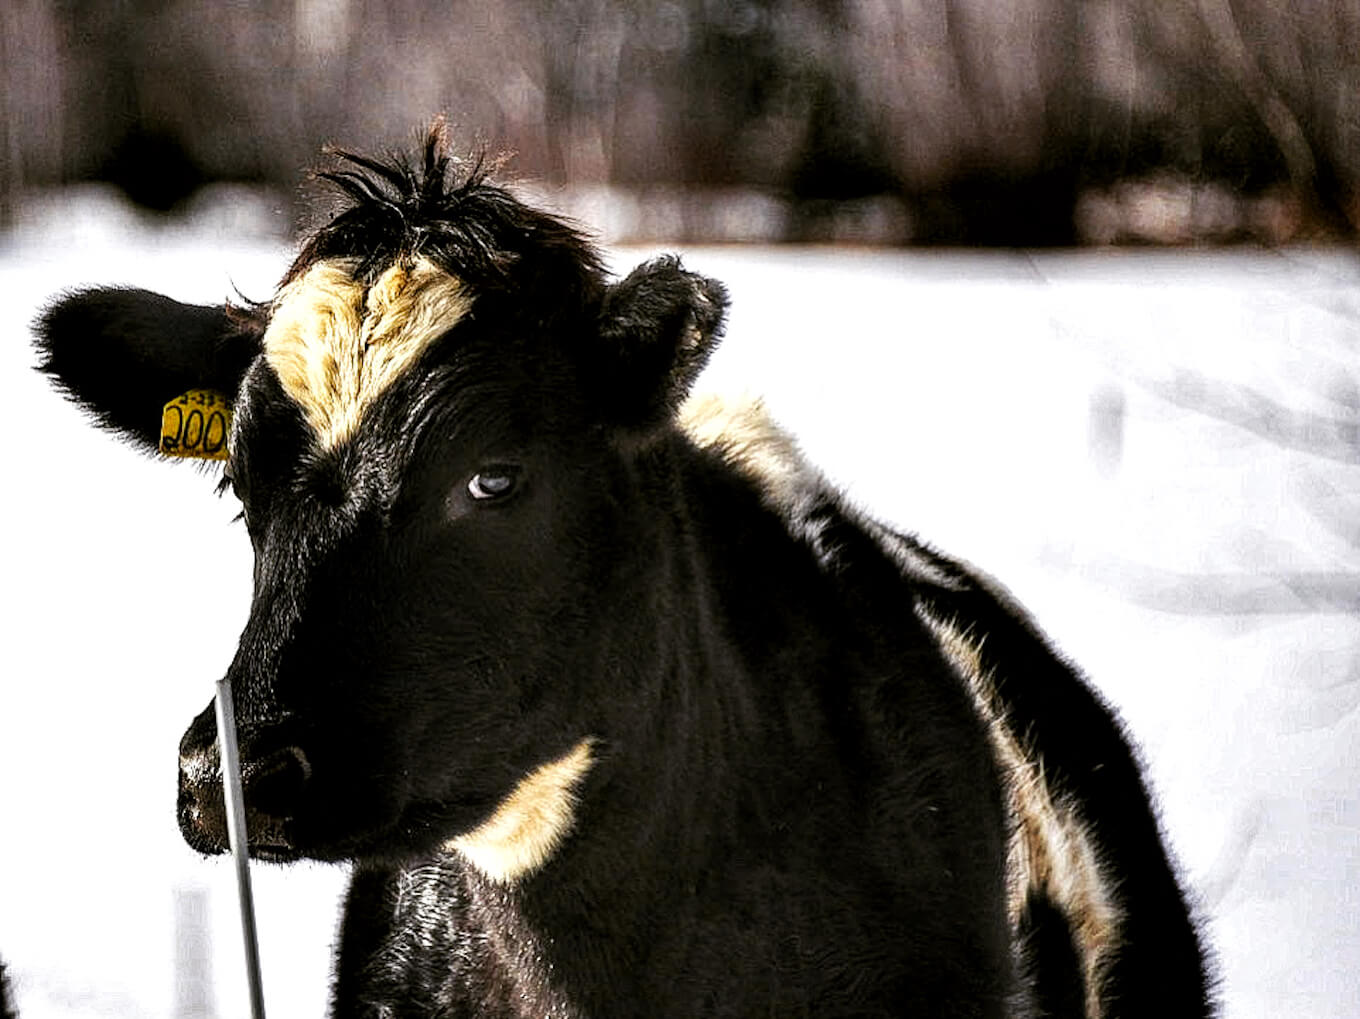 A black and white cow against a white backdrop to demonstrate high contrast photography.